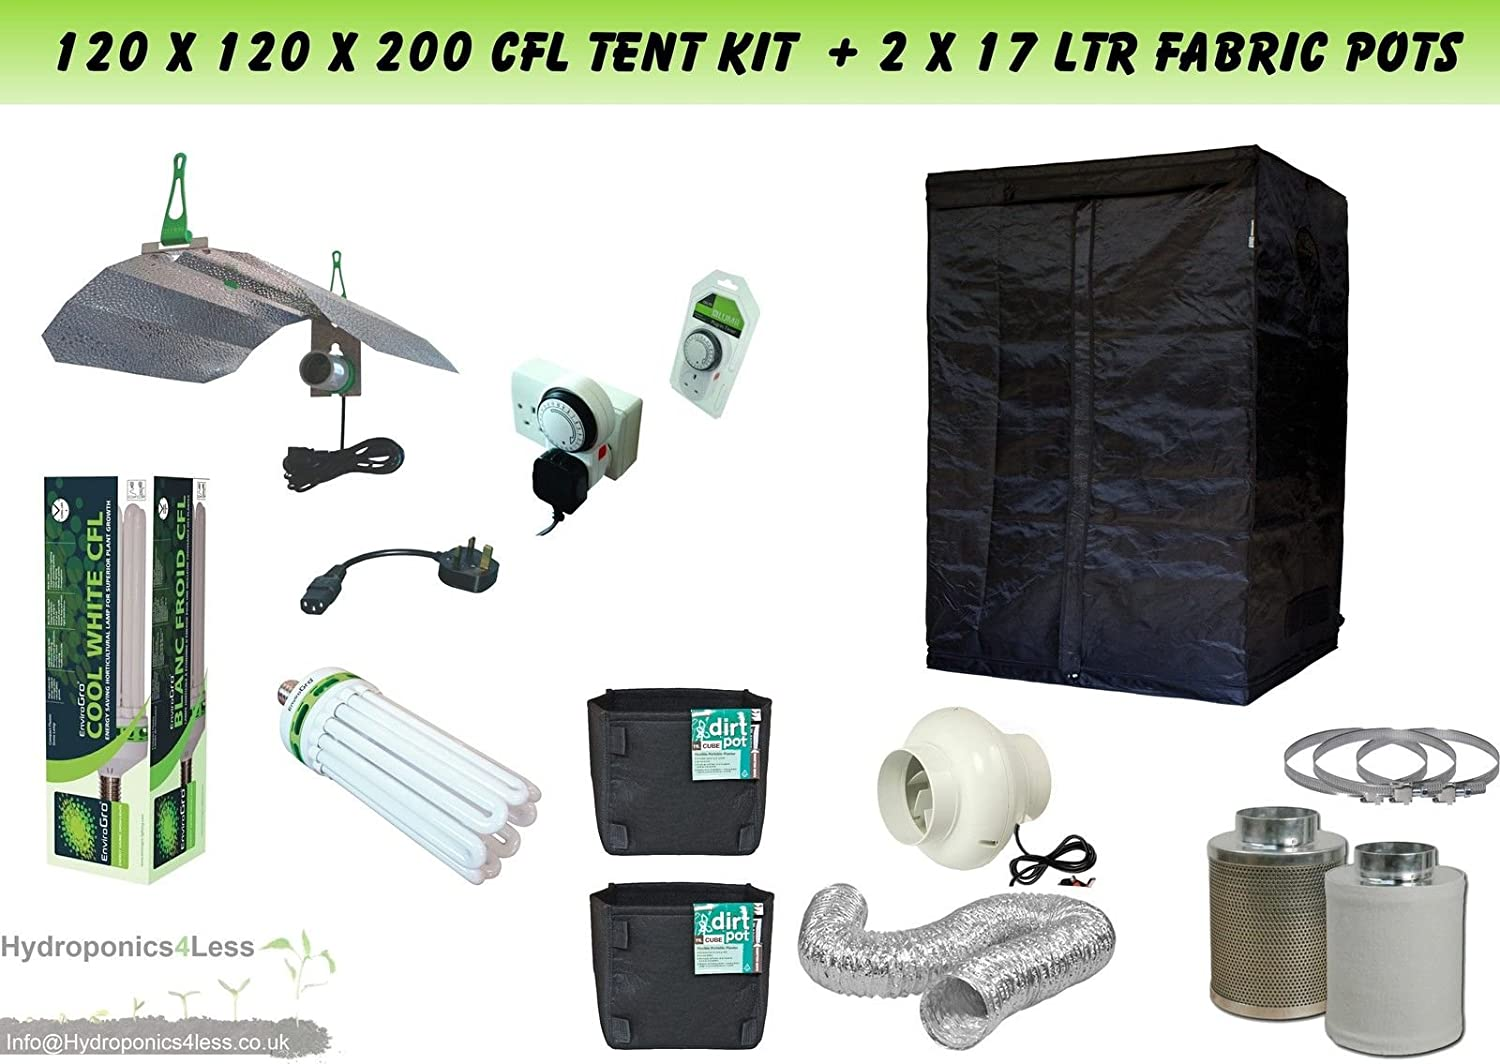 Best Complete Hydroponic Grow Room Tent Fan Filter CFL Light Kit 120x120x200 (1.2 x 1.2 x 2 Meter(120x120x200) hydroponics4less